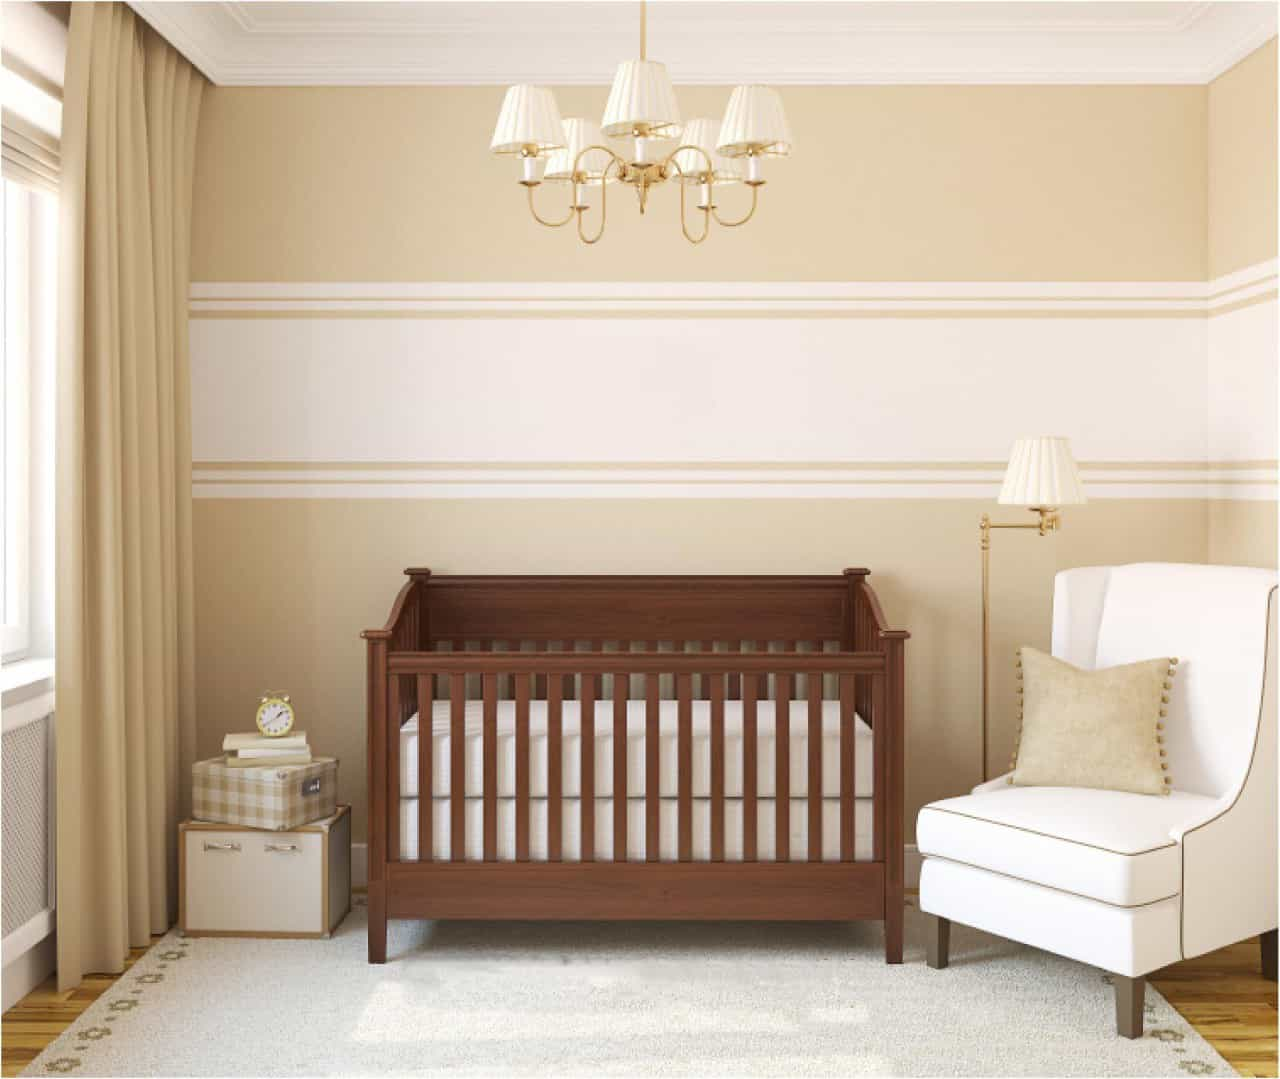 Simply Minimalist Nursery Bedroom (Image 8 of 9)